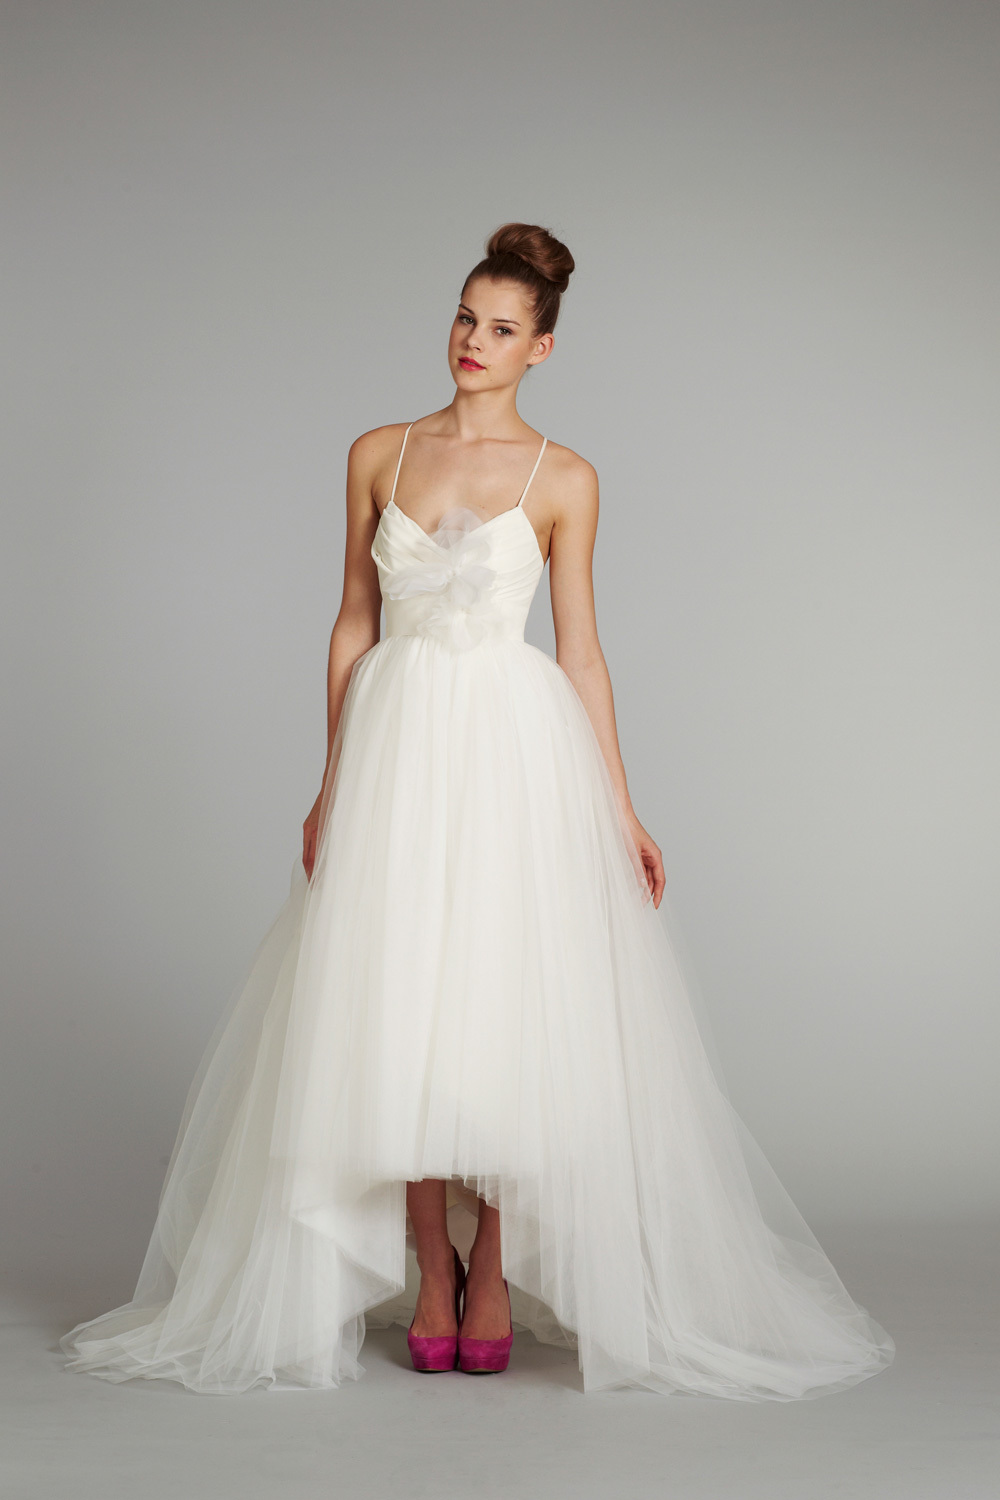 2012-wedding-dresses-bridal-gown-blush-collection-for-jlm-couture-lilac-white.full